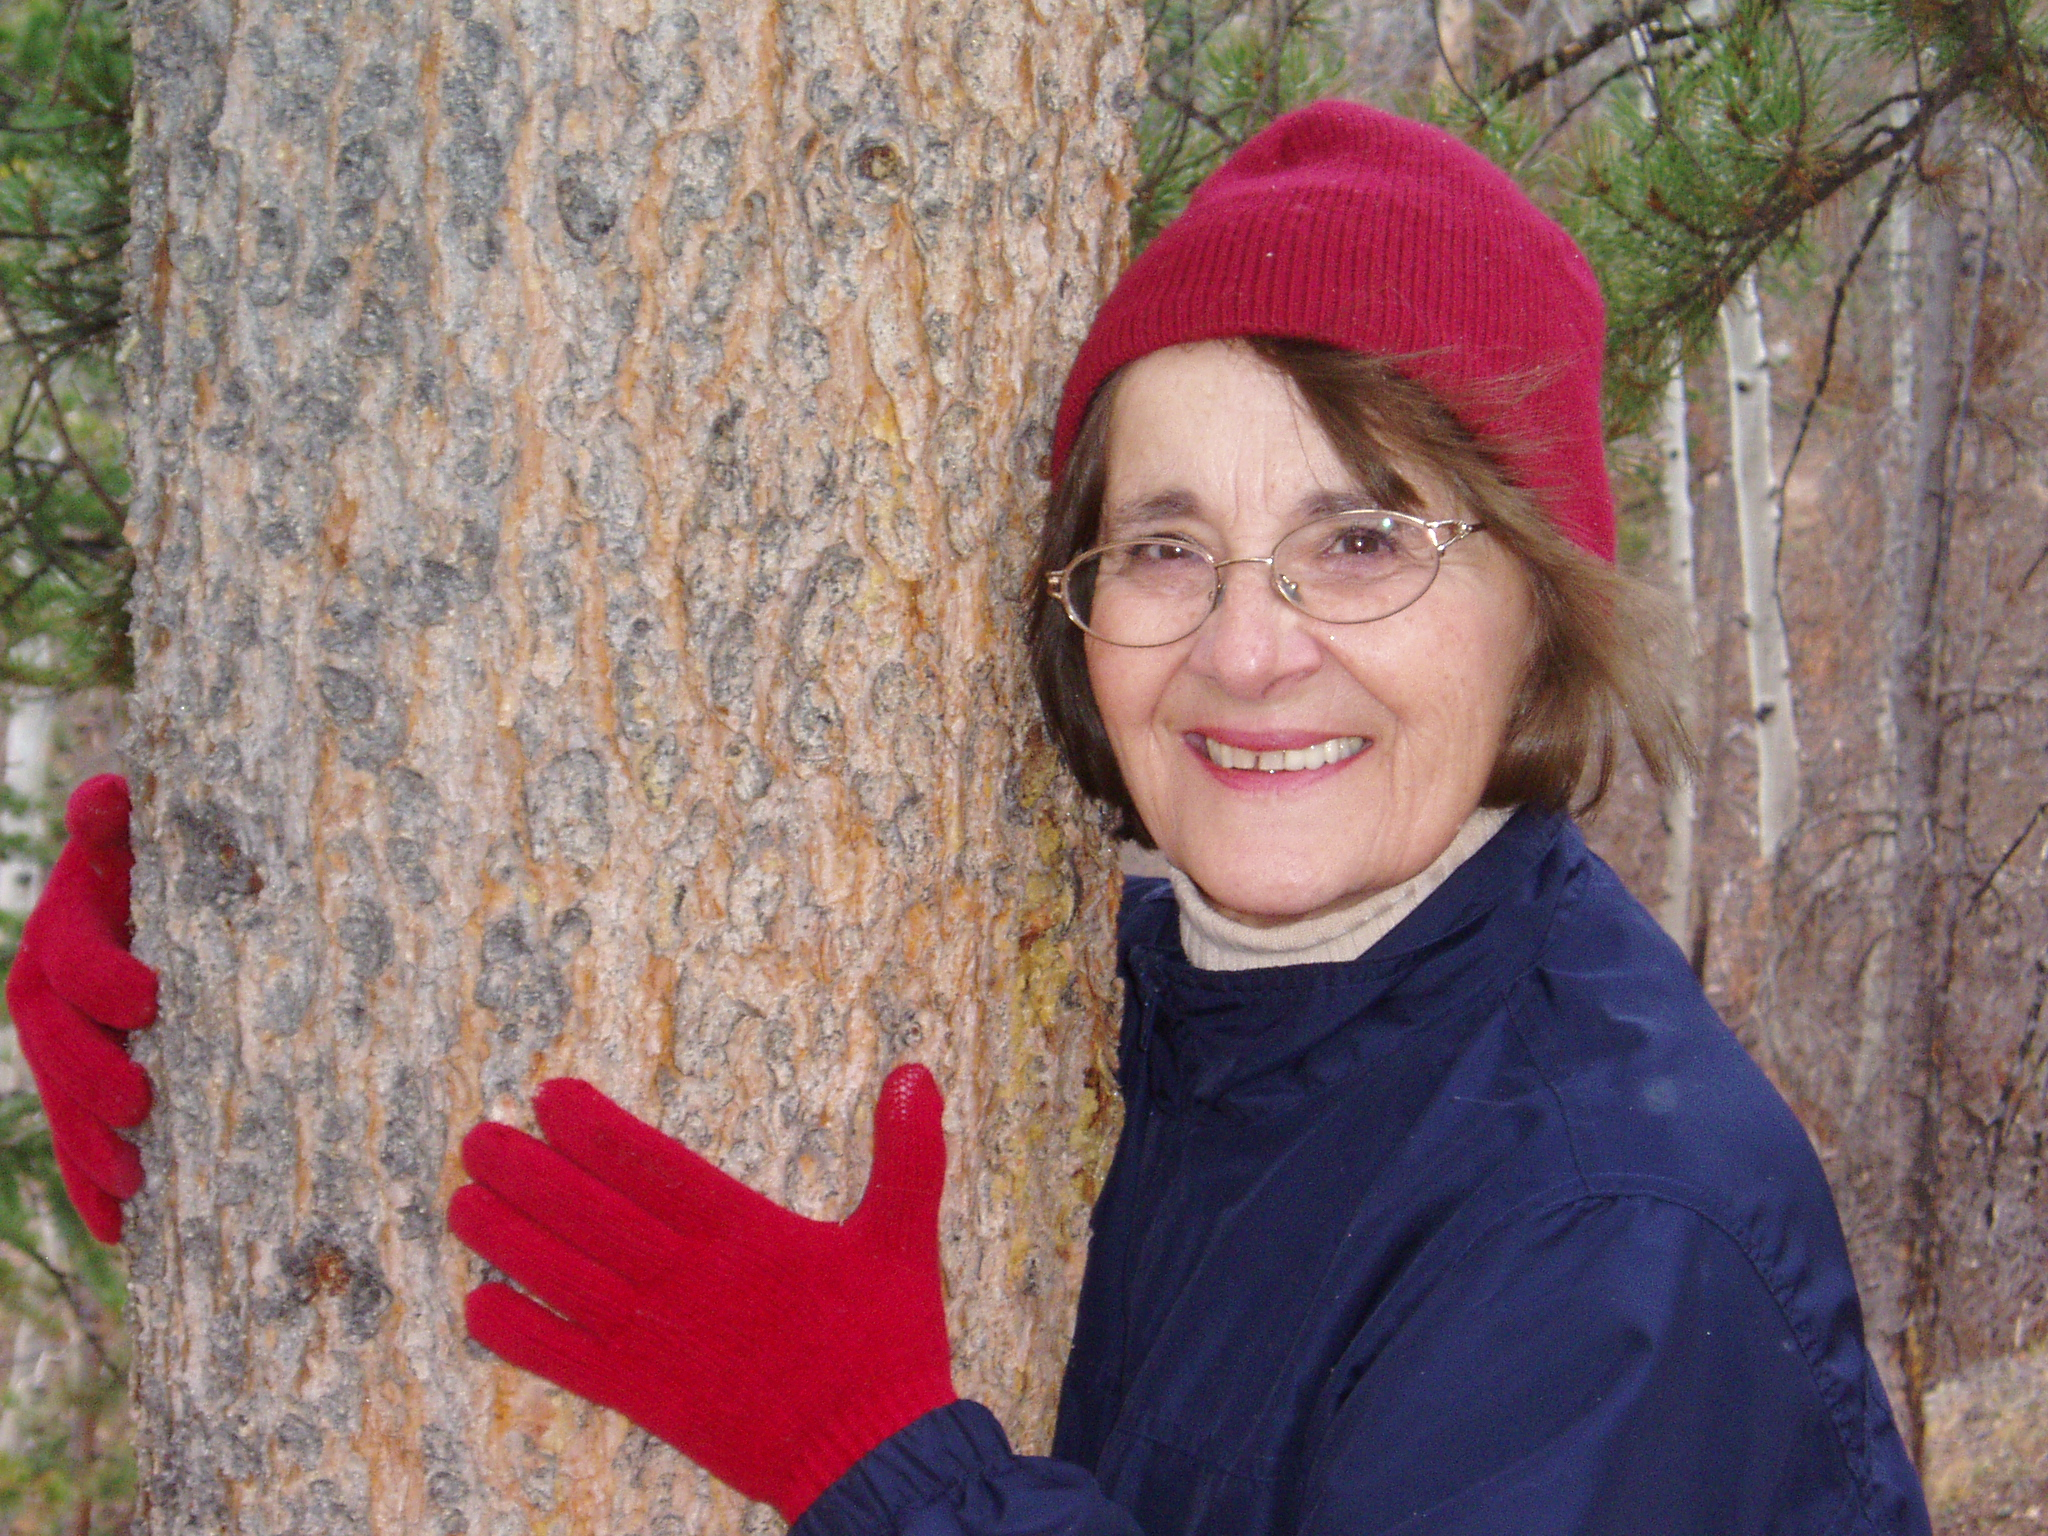 Carol Carpenter, a proud tree hugger